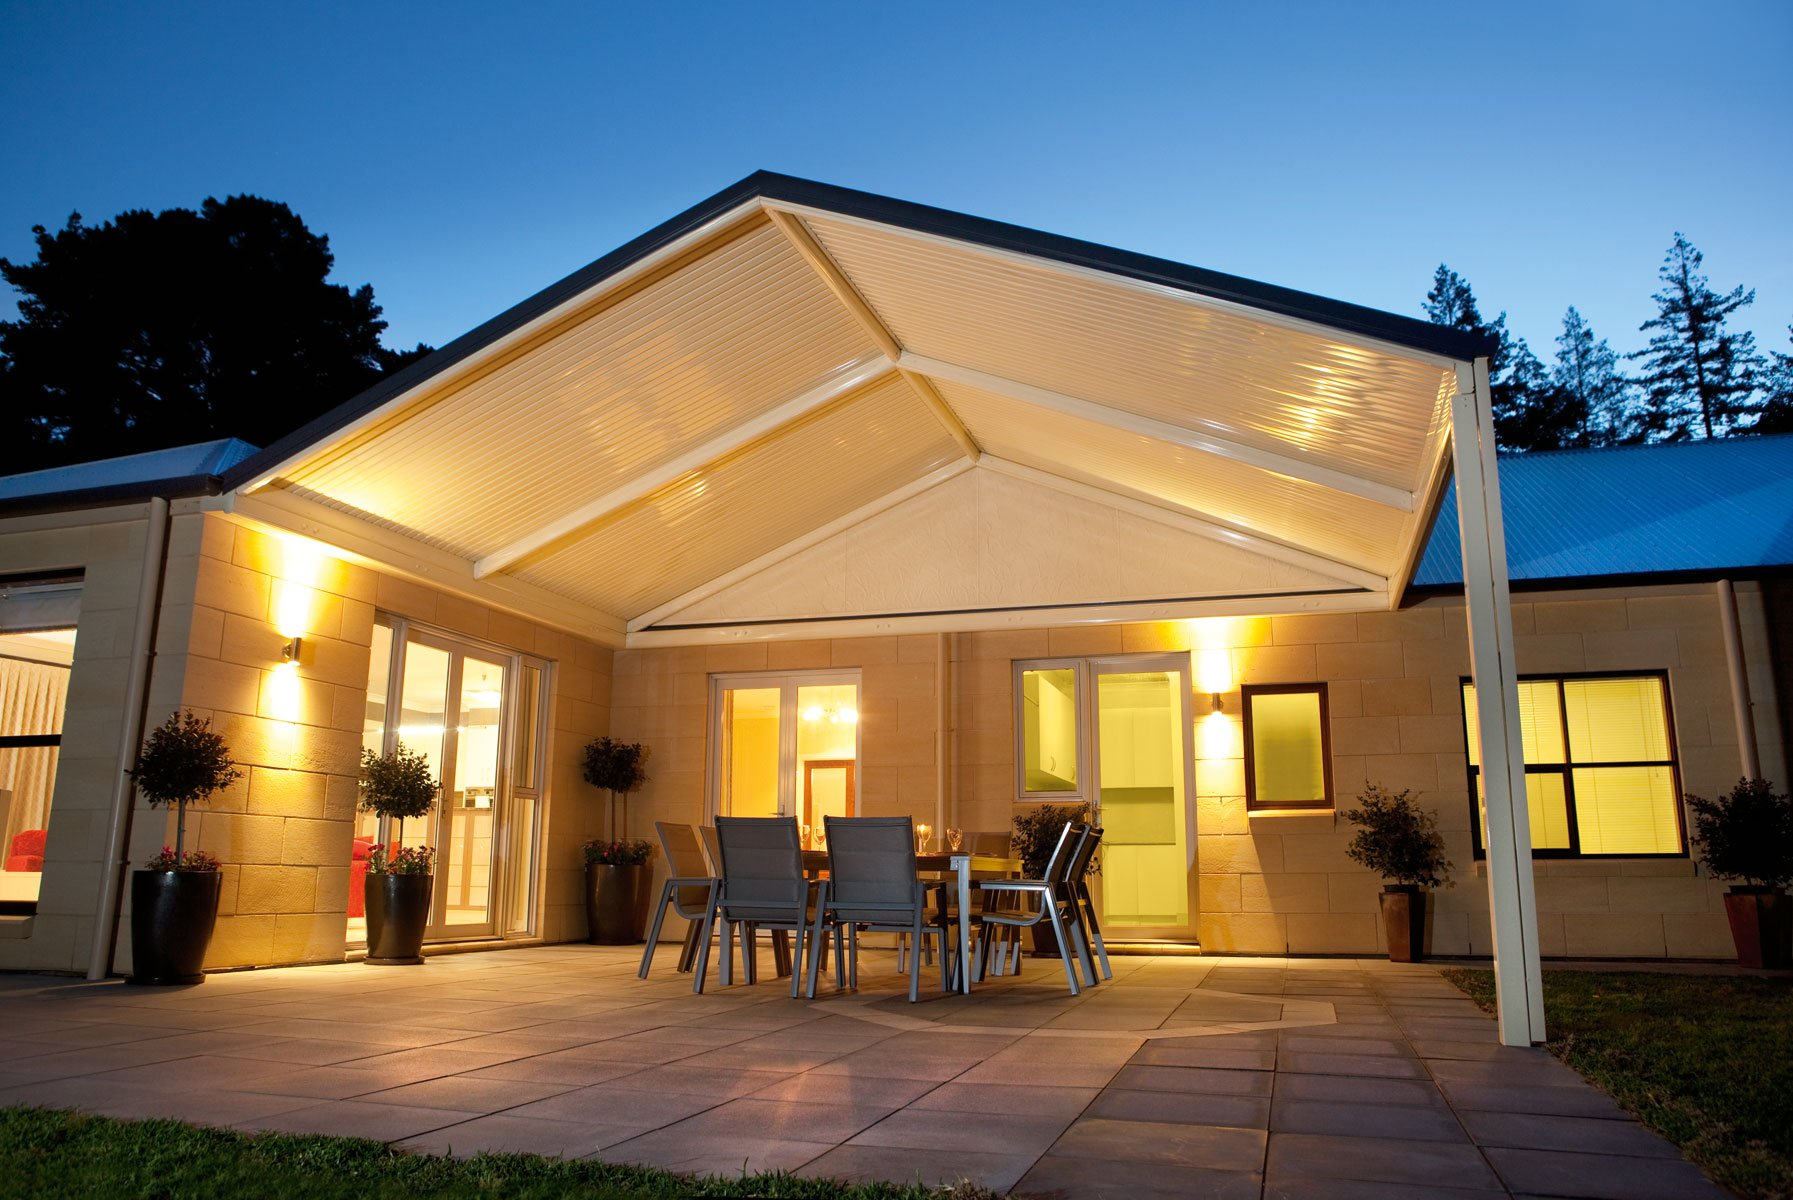 , 3 Ways to Create the Ultimate Outdoor Destination with a Verandah